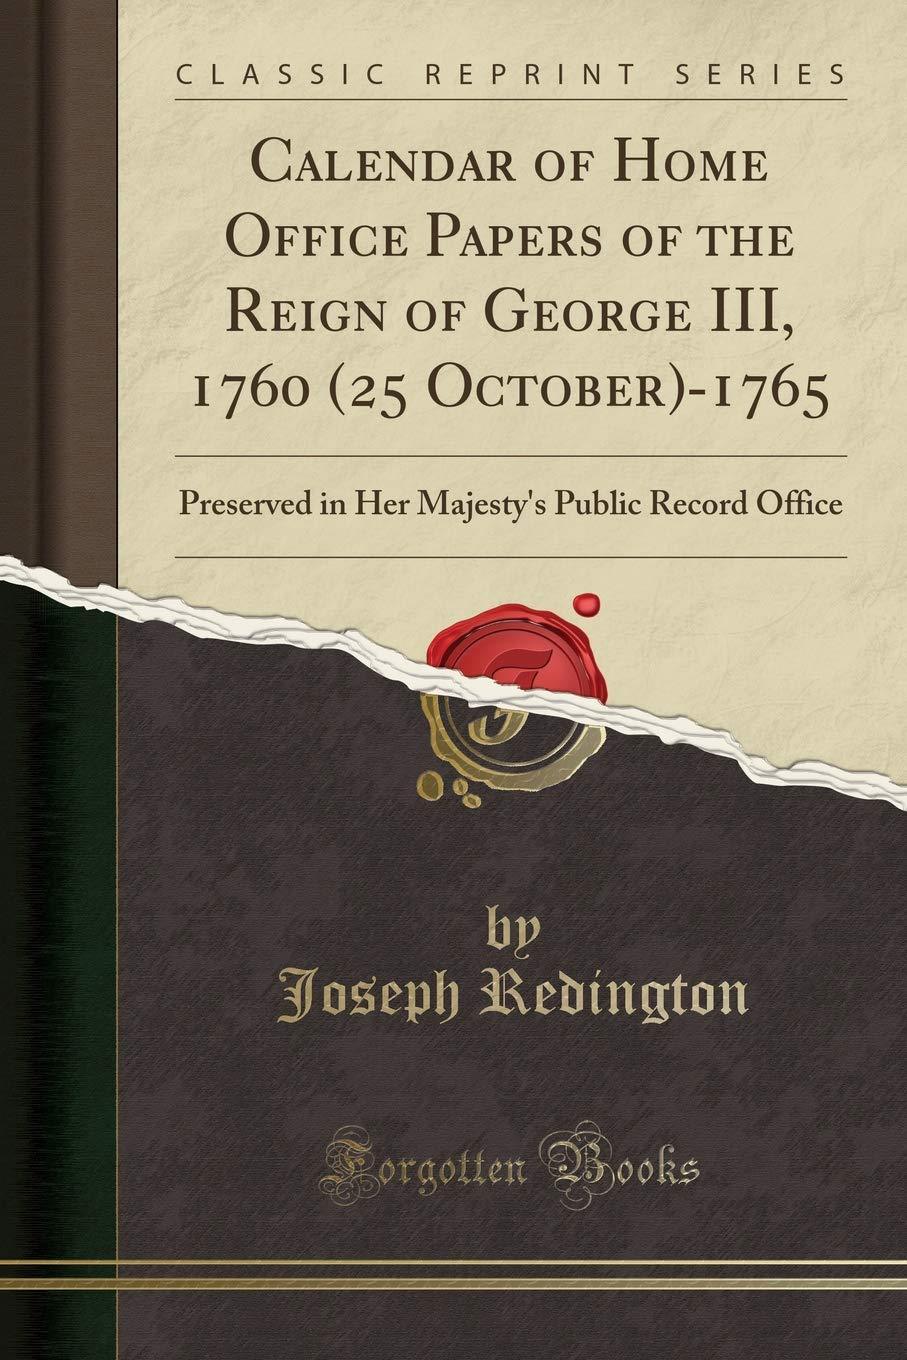 Download Calendar of Home Office Papers of the Reign of George III, 1760 (25 October)-1765: Preserved in Her Majesty's Public Record Office (Classic Reprint) pdf epub